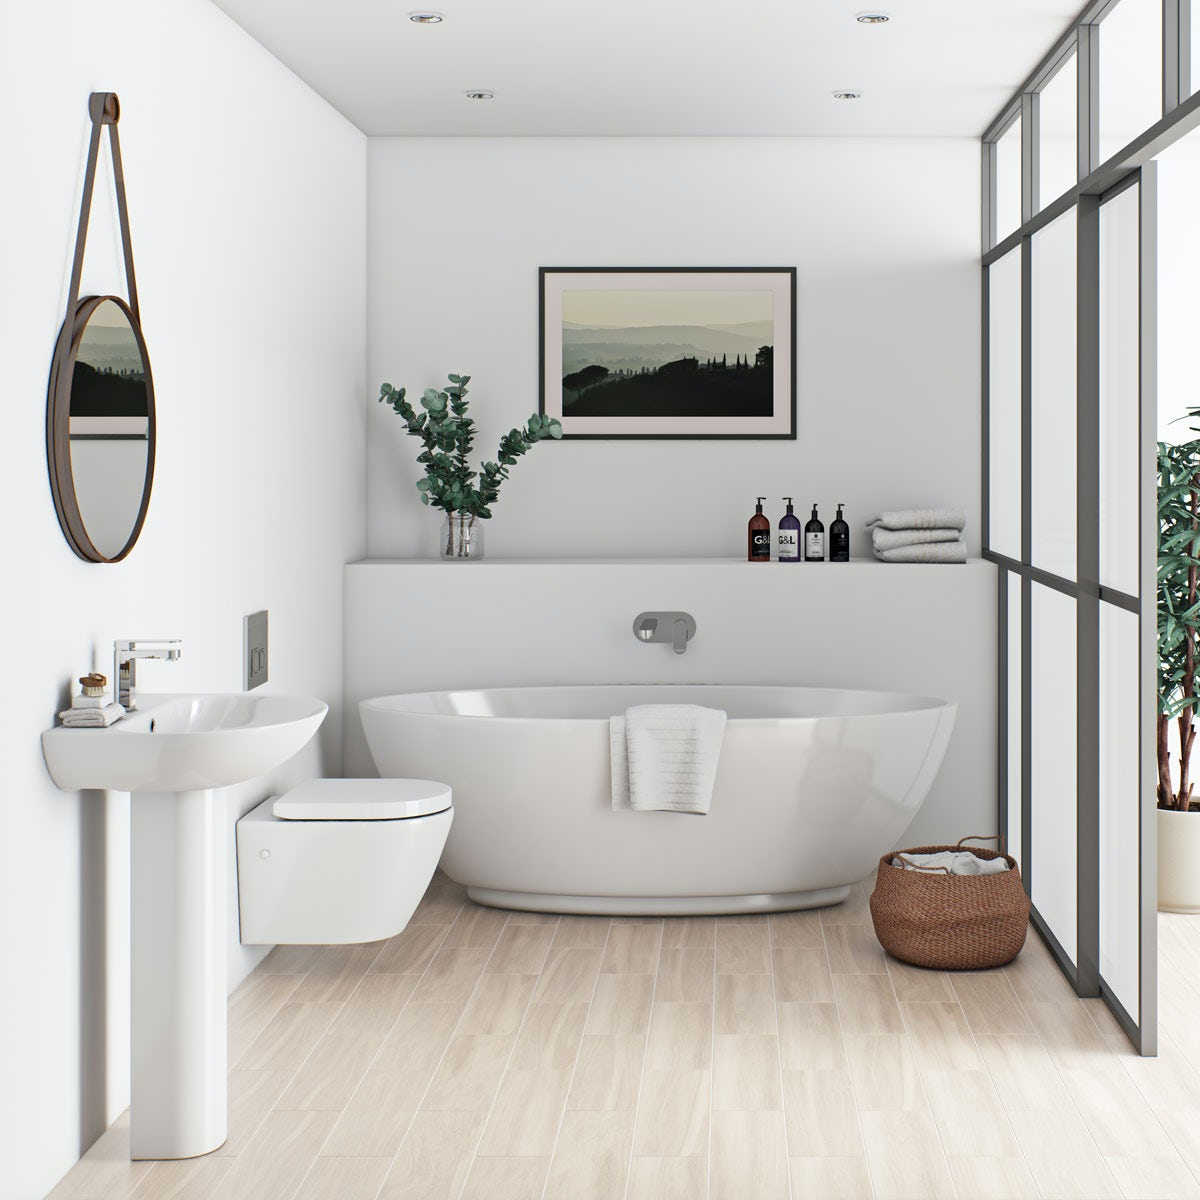 Bathroom: Mode Harrison Bathroom Suite With Freestanding Bath